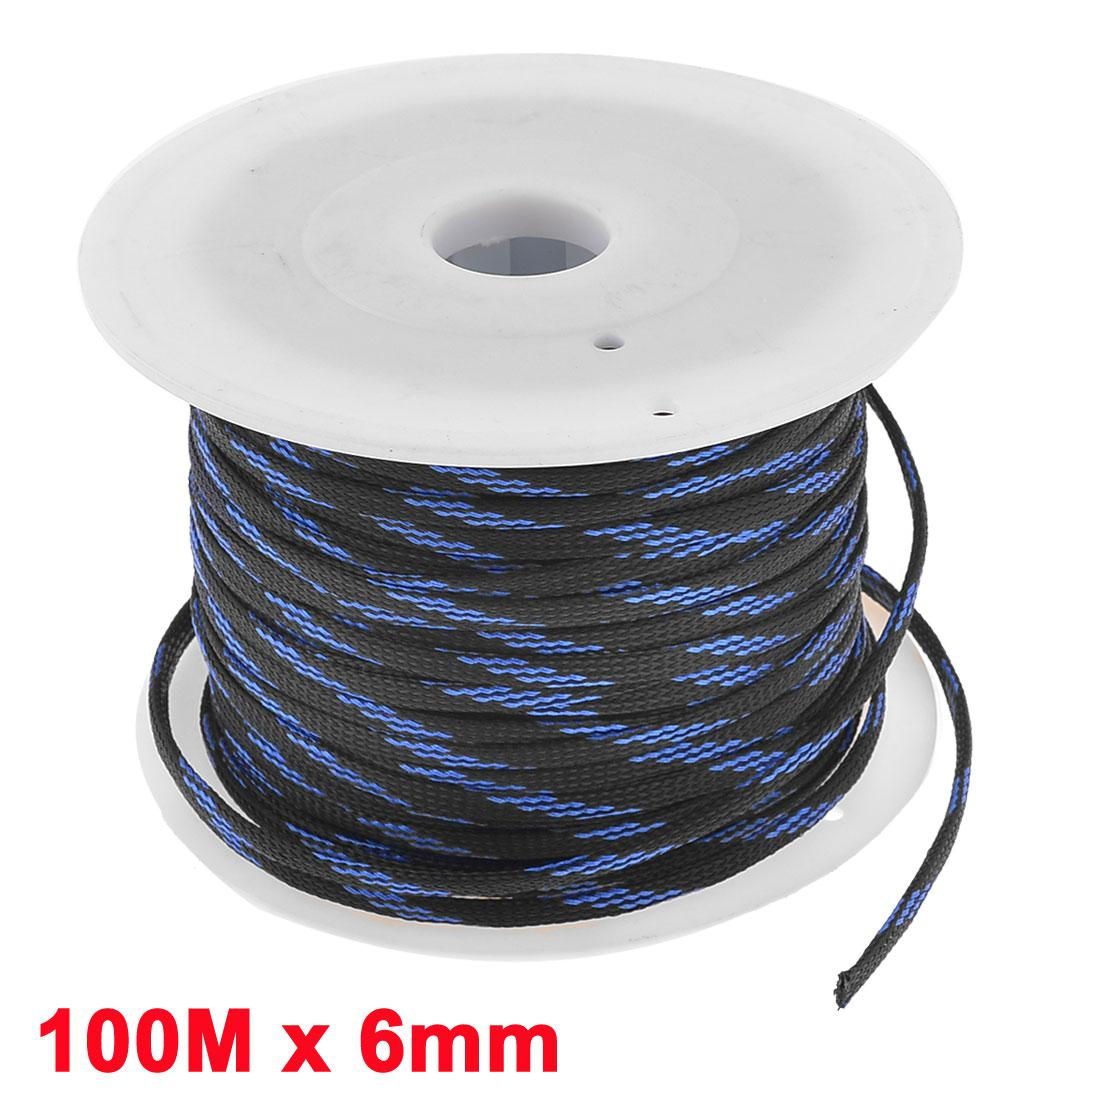 Car Audio Braided Polyester Sleeving Cable Cover Coil Blue Black ...